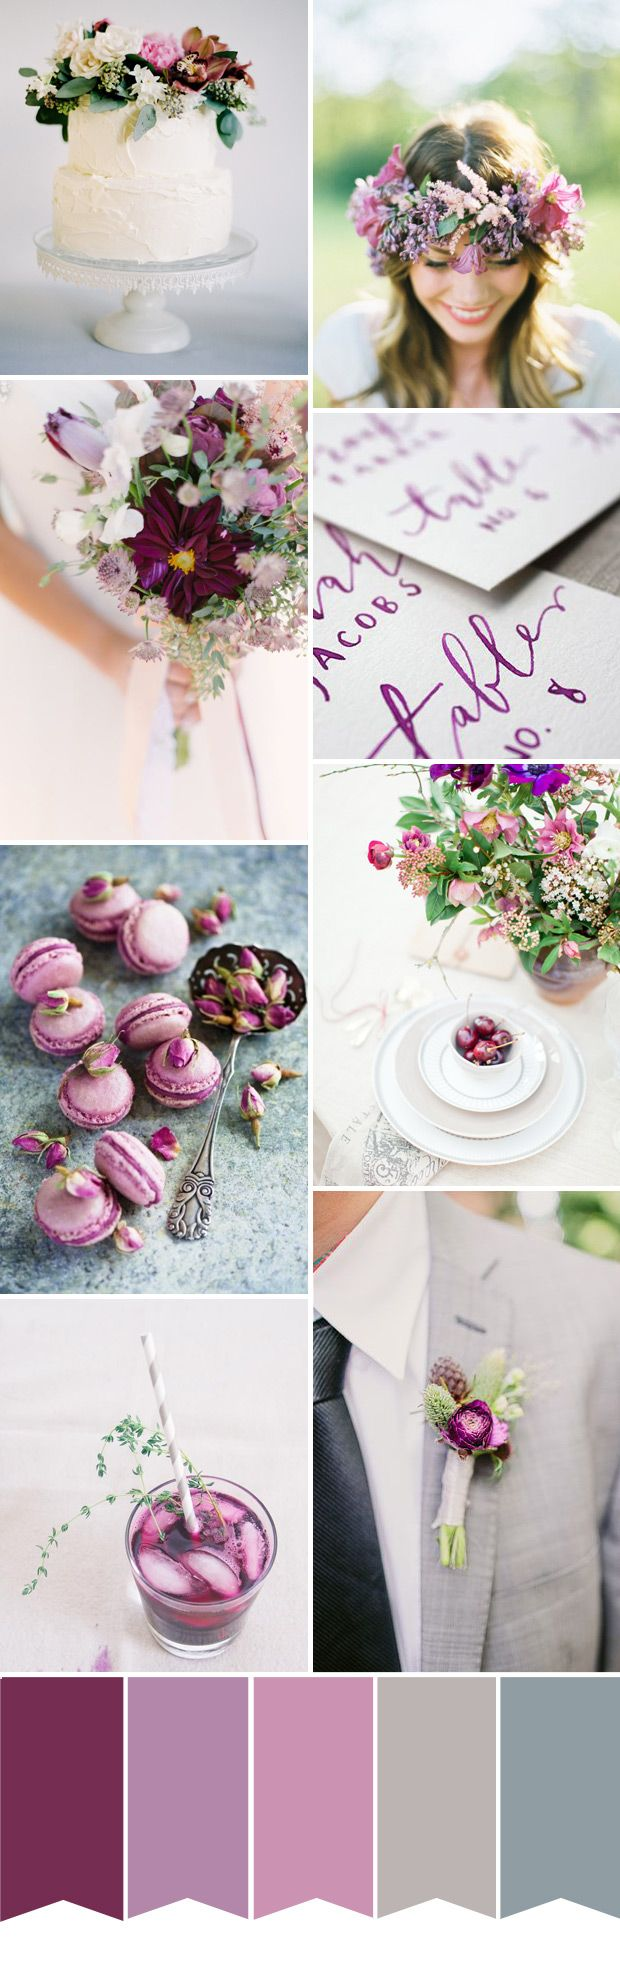 Pantone Colour of the Year - Radiant Orchid Wedding Inspiration | onefabday.com